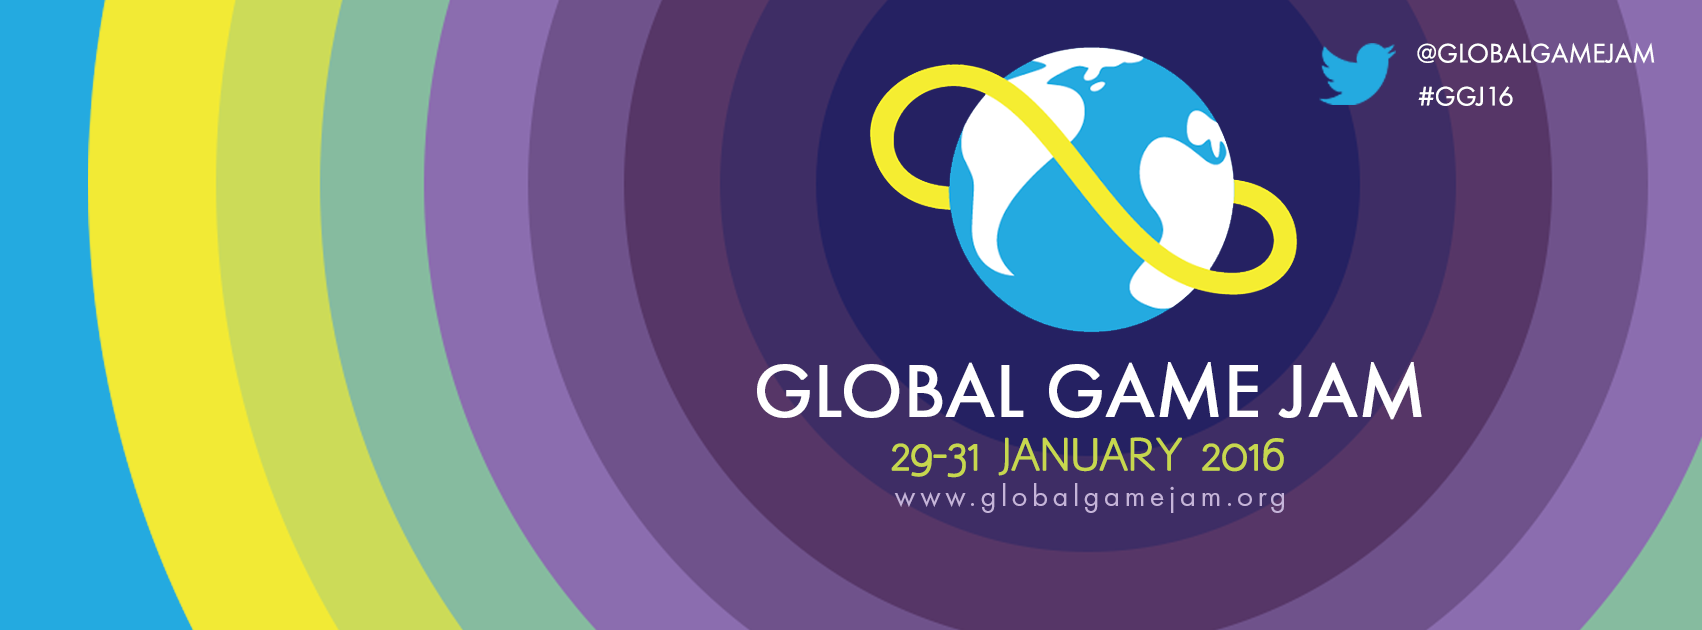 Global Game Jam 2016: The Aftermath